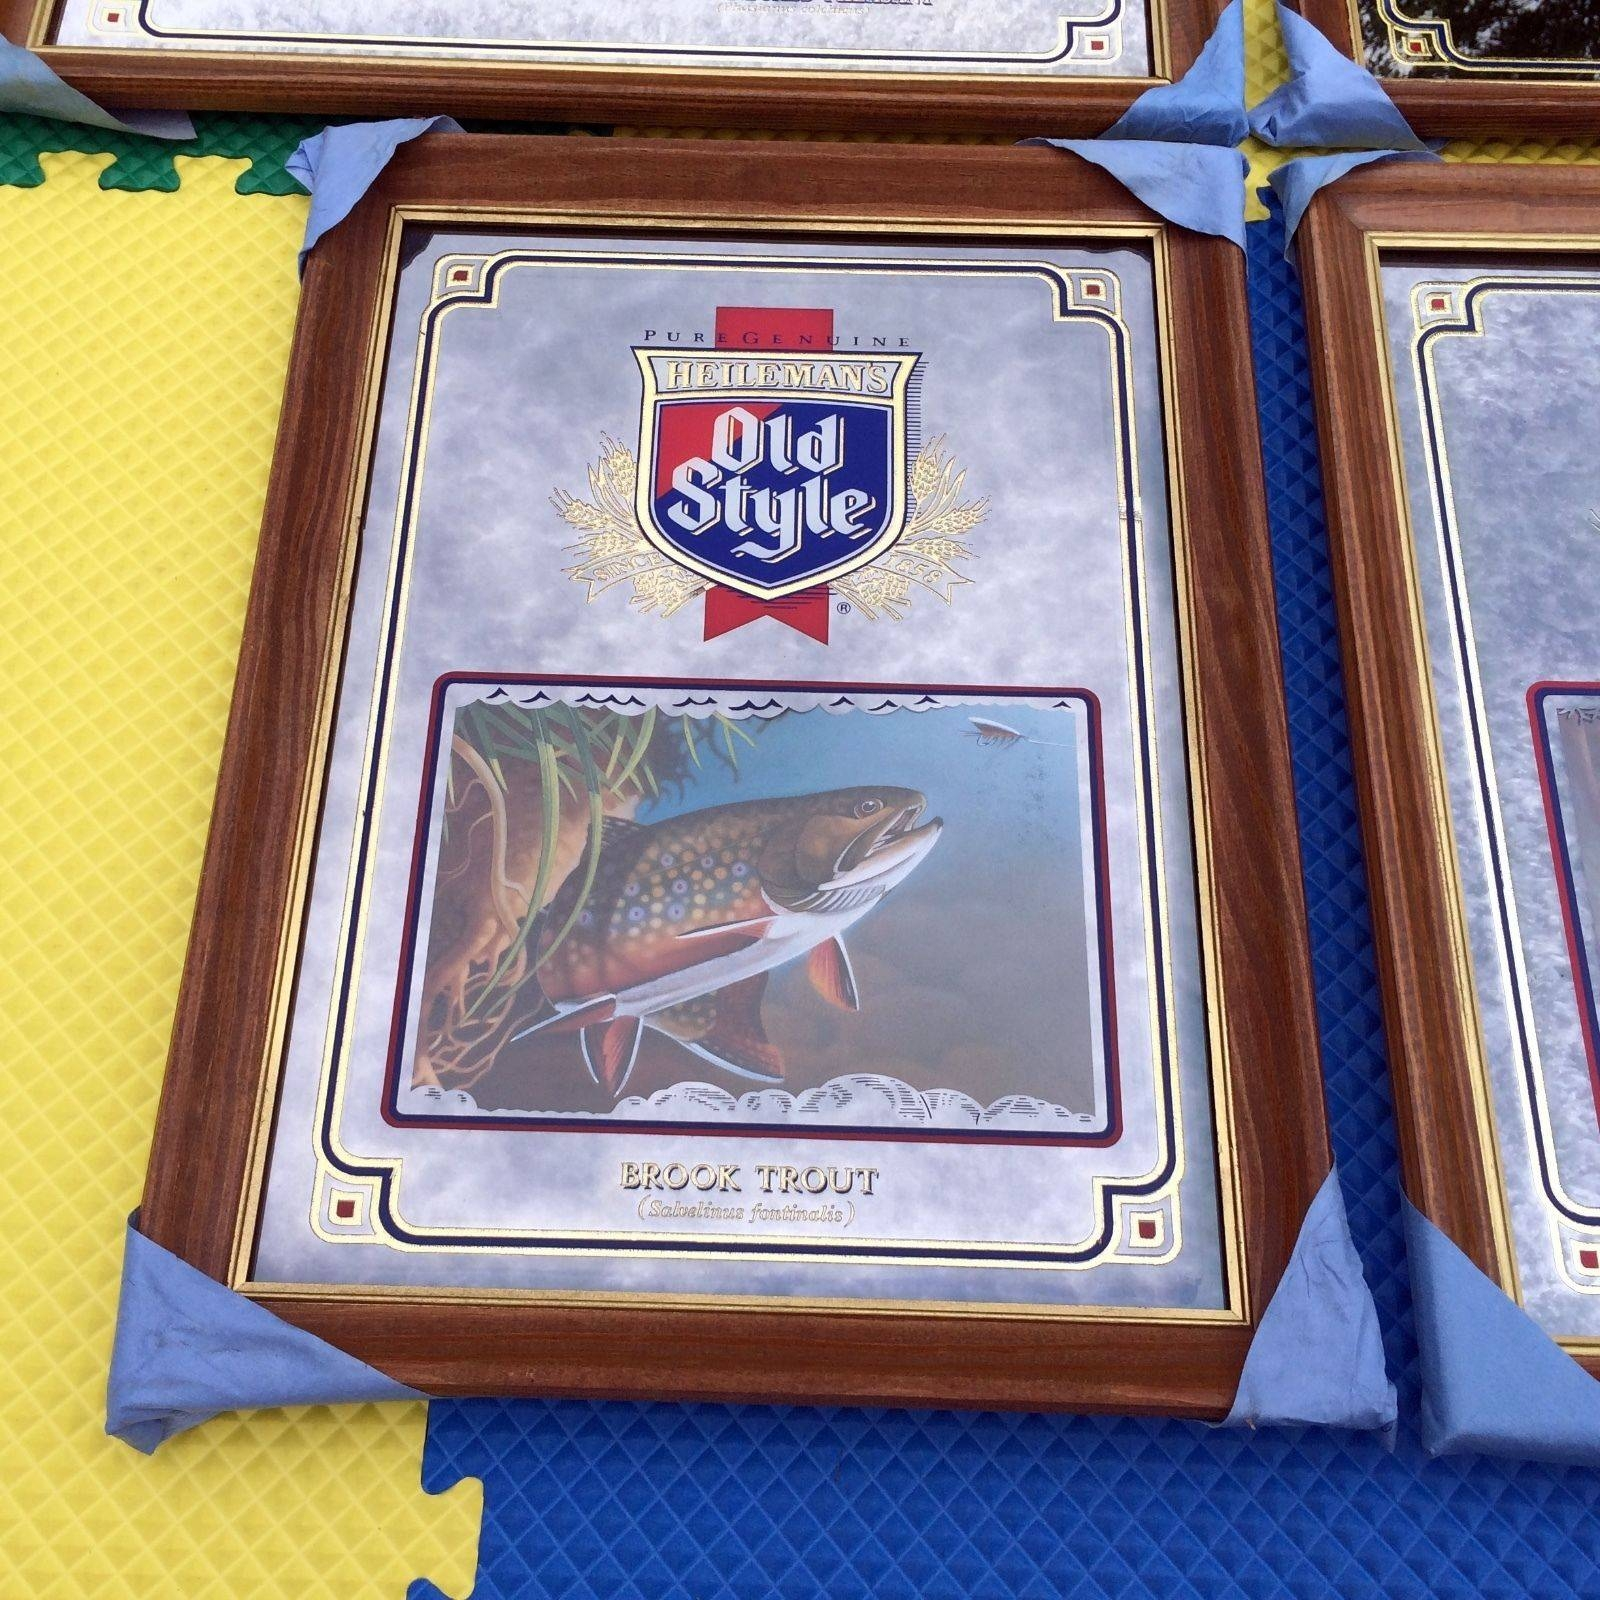 Vintage 90S Old Style Beer Wildlife Series Mirror Set Deer with regard to Old-Style Mirrors (Image 12 of 15)